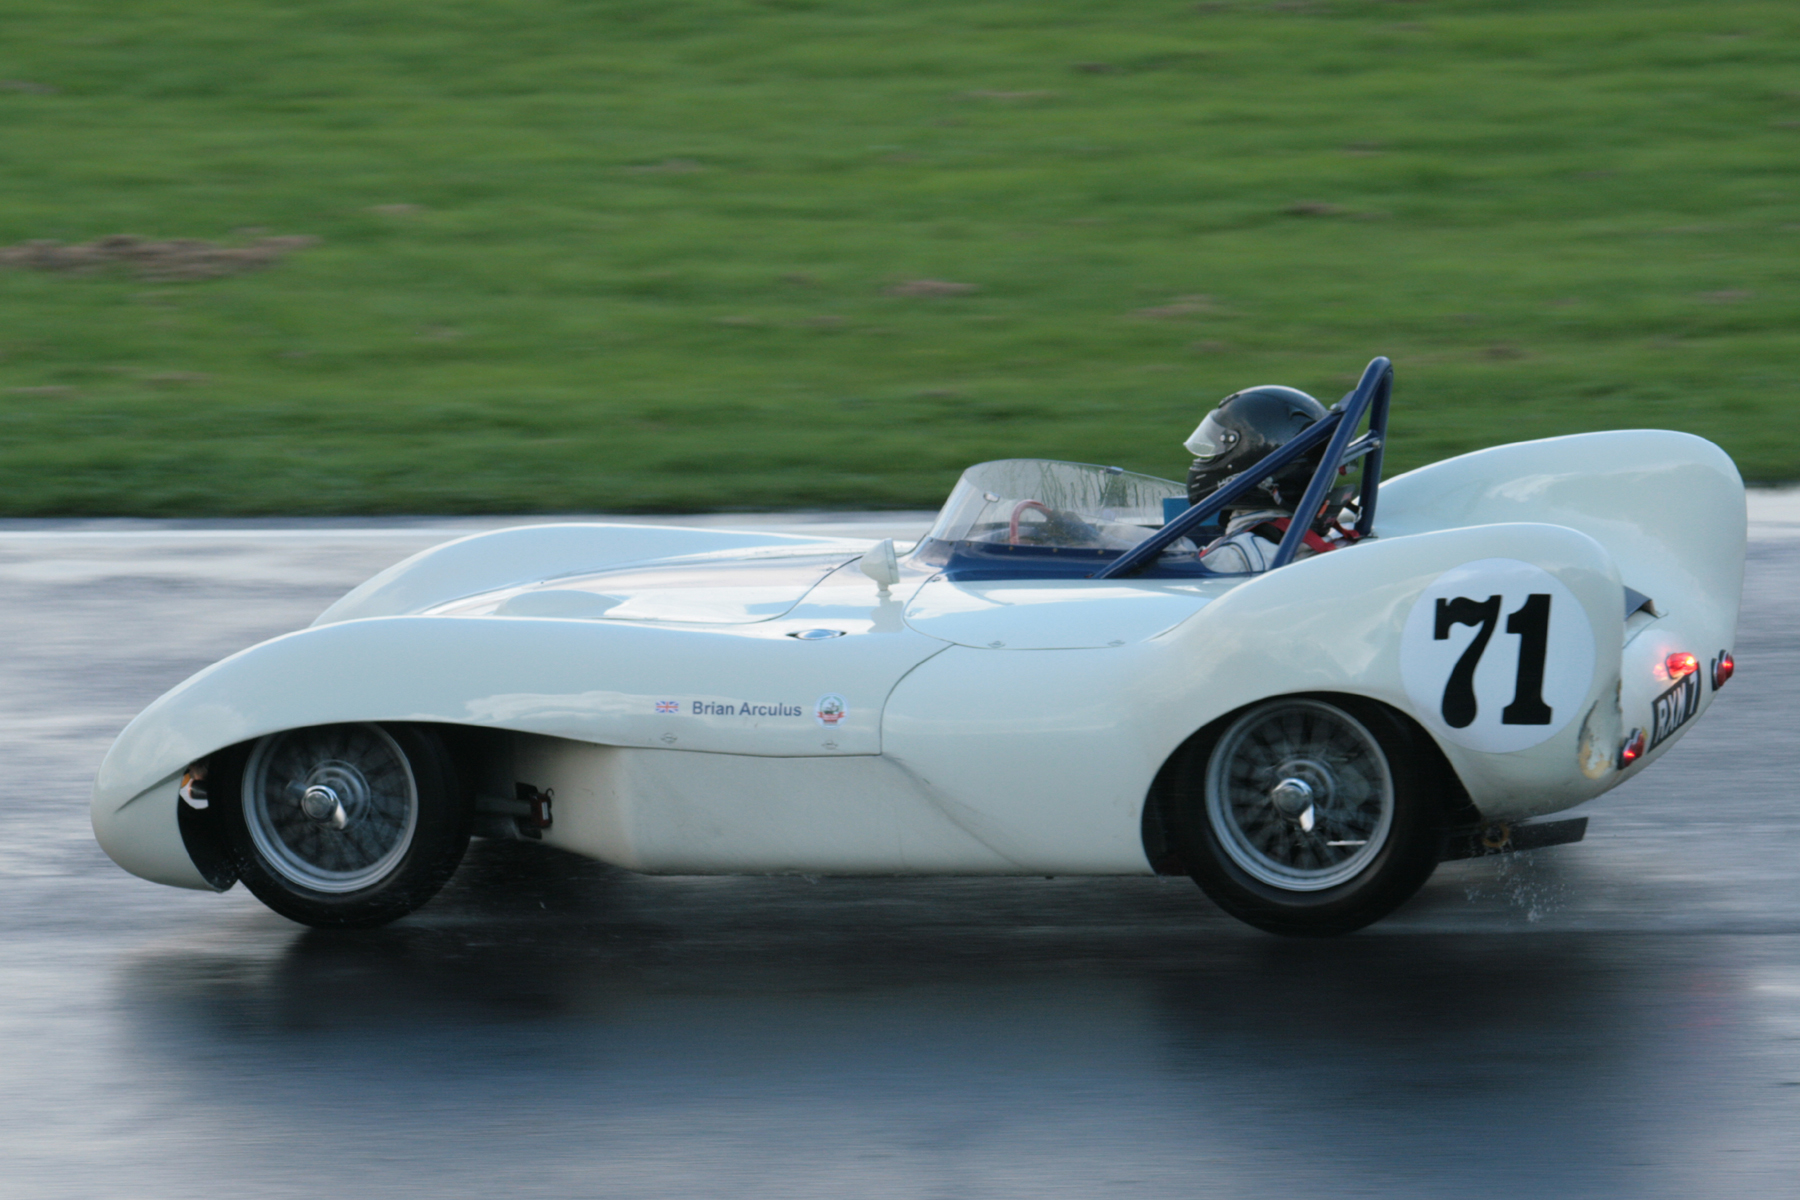 Brian Arculus took the Lotus IX to 6th overall. The tail shows signs of damage (see text) Photo - John Turner